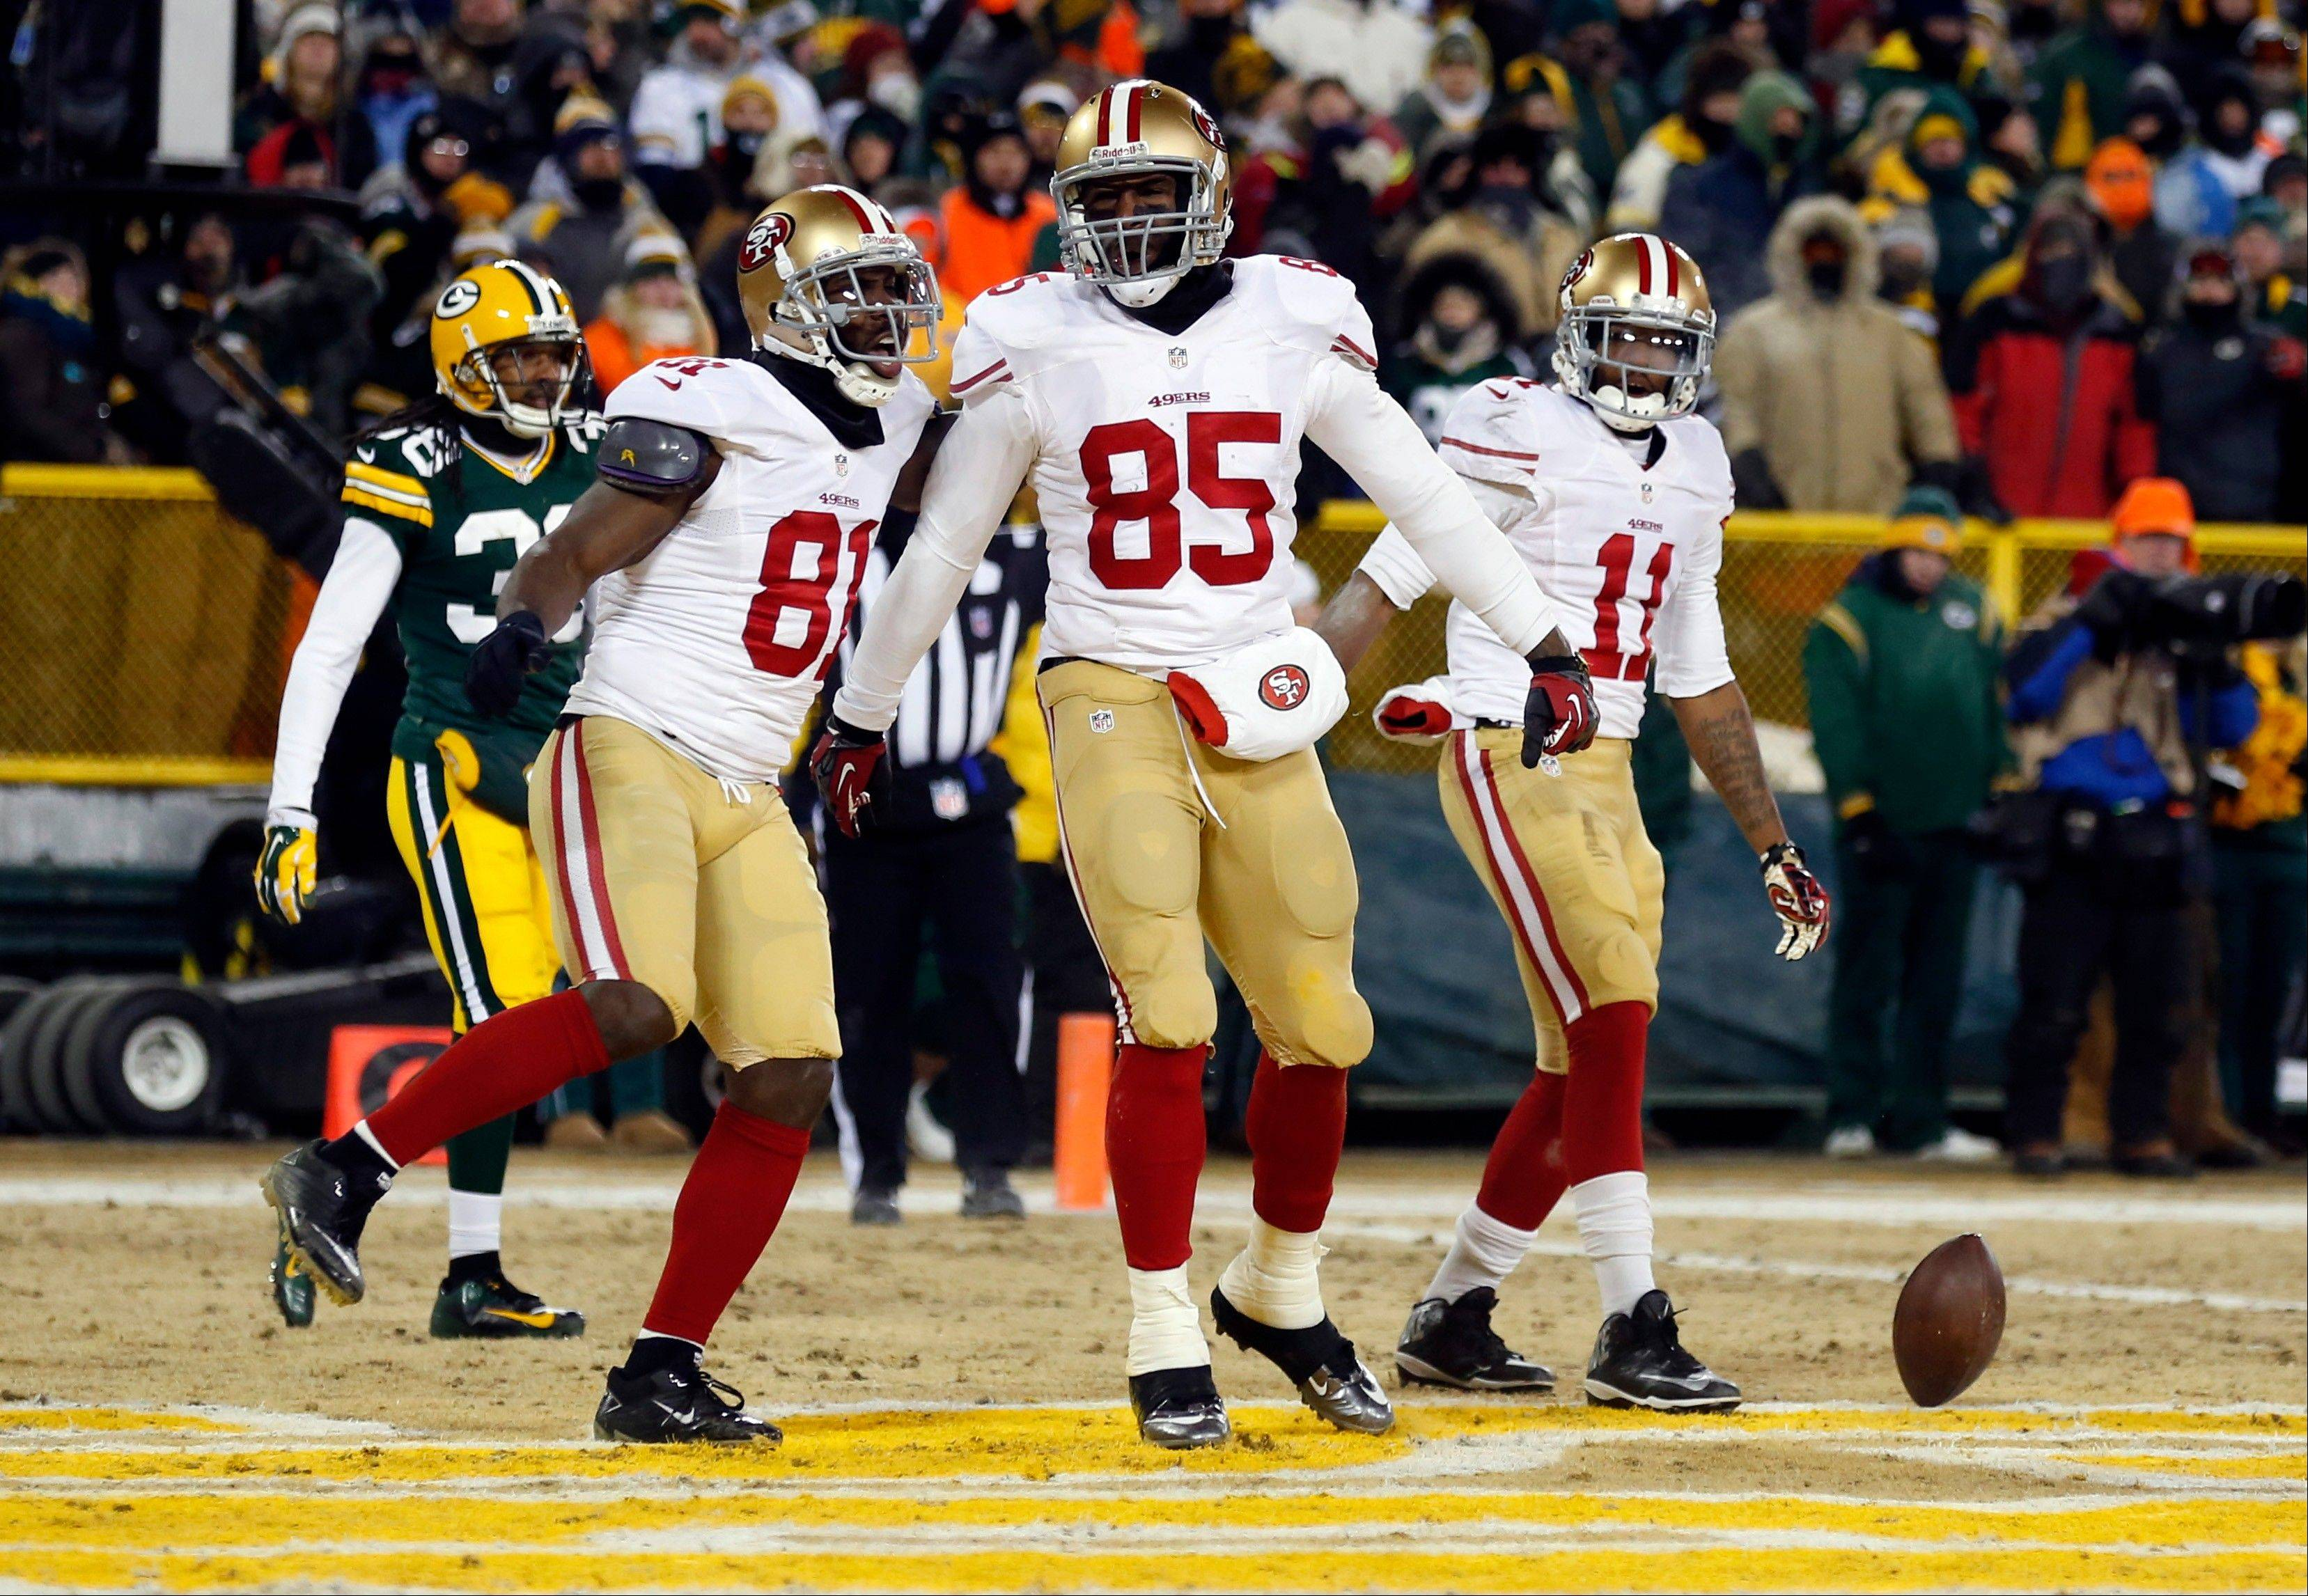 San Francisco 49ers tight end Vernon Davis (85) celebrates a touchdown catch with wide receiver Anquan Boldin (81) during the second half of an NFL wild-card playoff football game, Sunday, Jan. 5, 2014, in Green Bay, Wis.